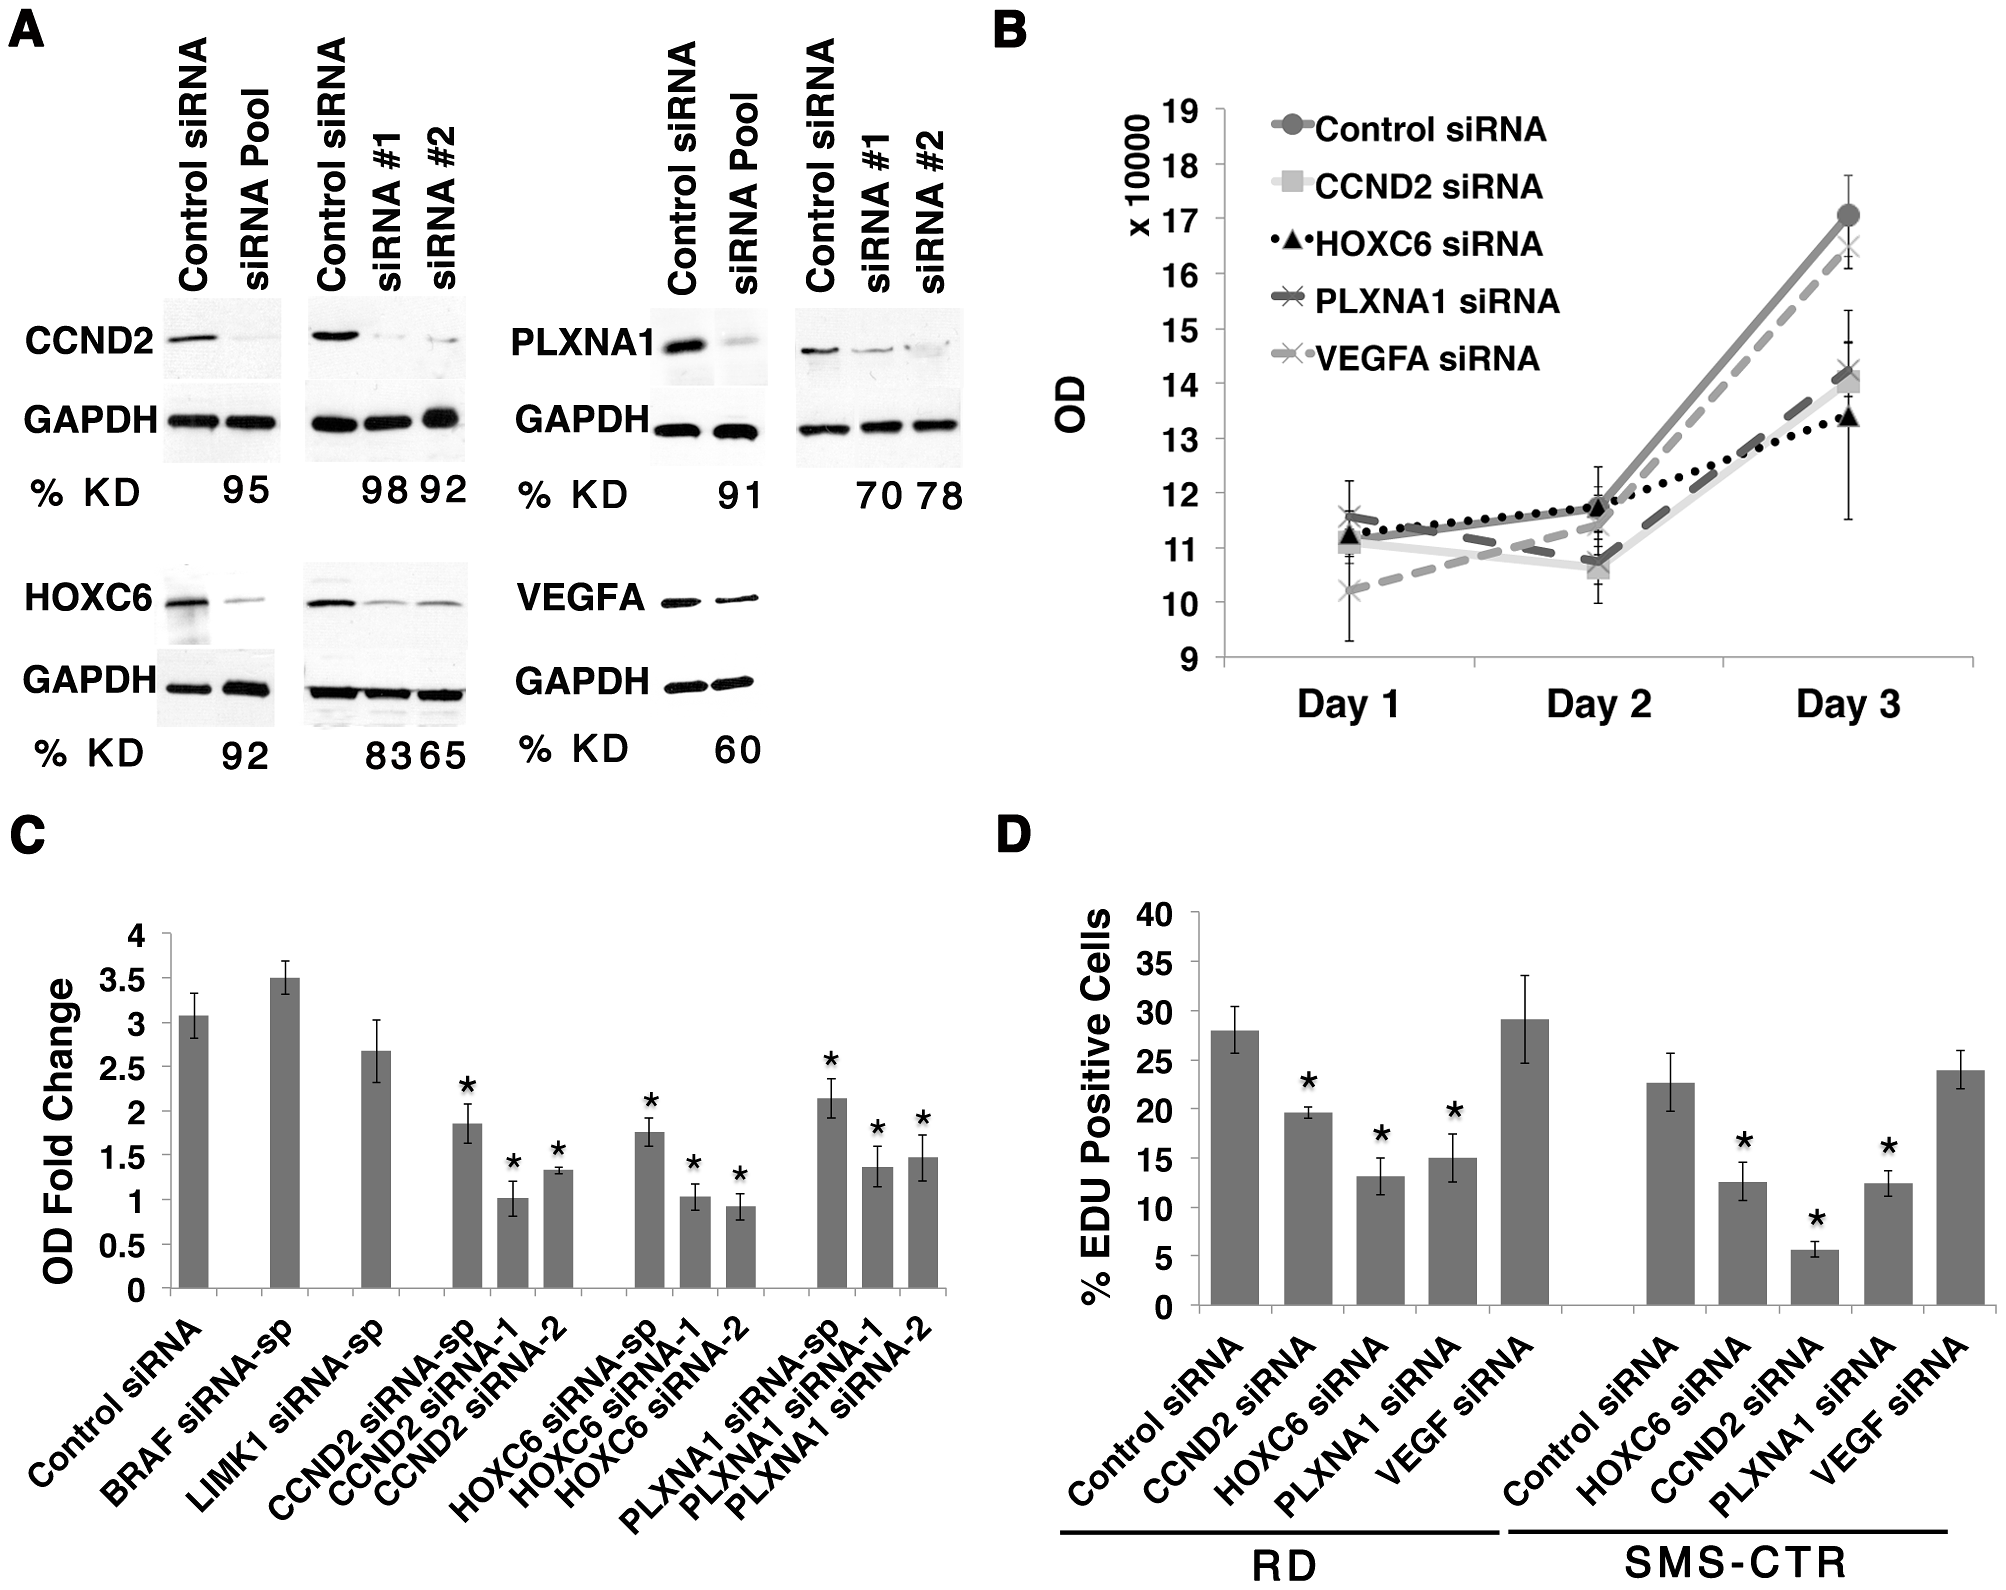 CCND2, HOXC6 and PLXNA1 exert important roles in human ERMS cell proliferation.